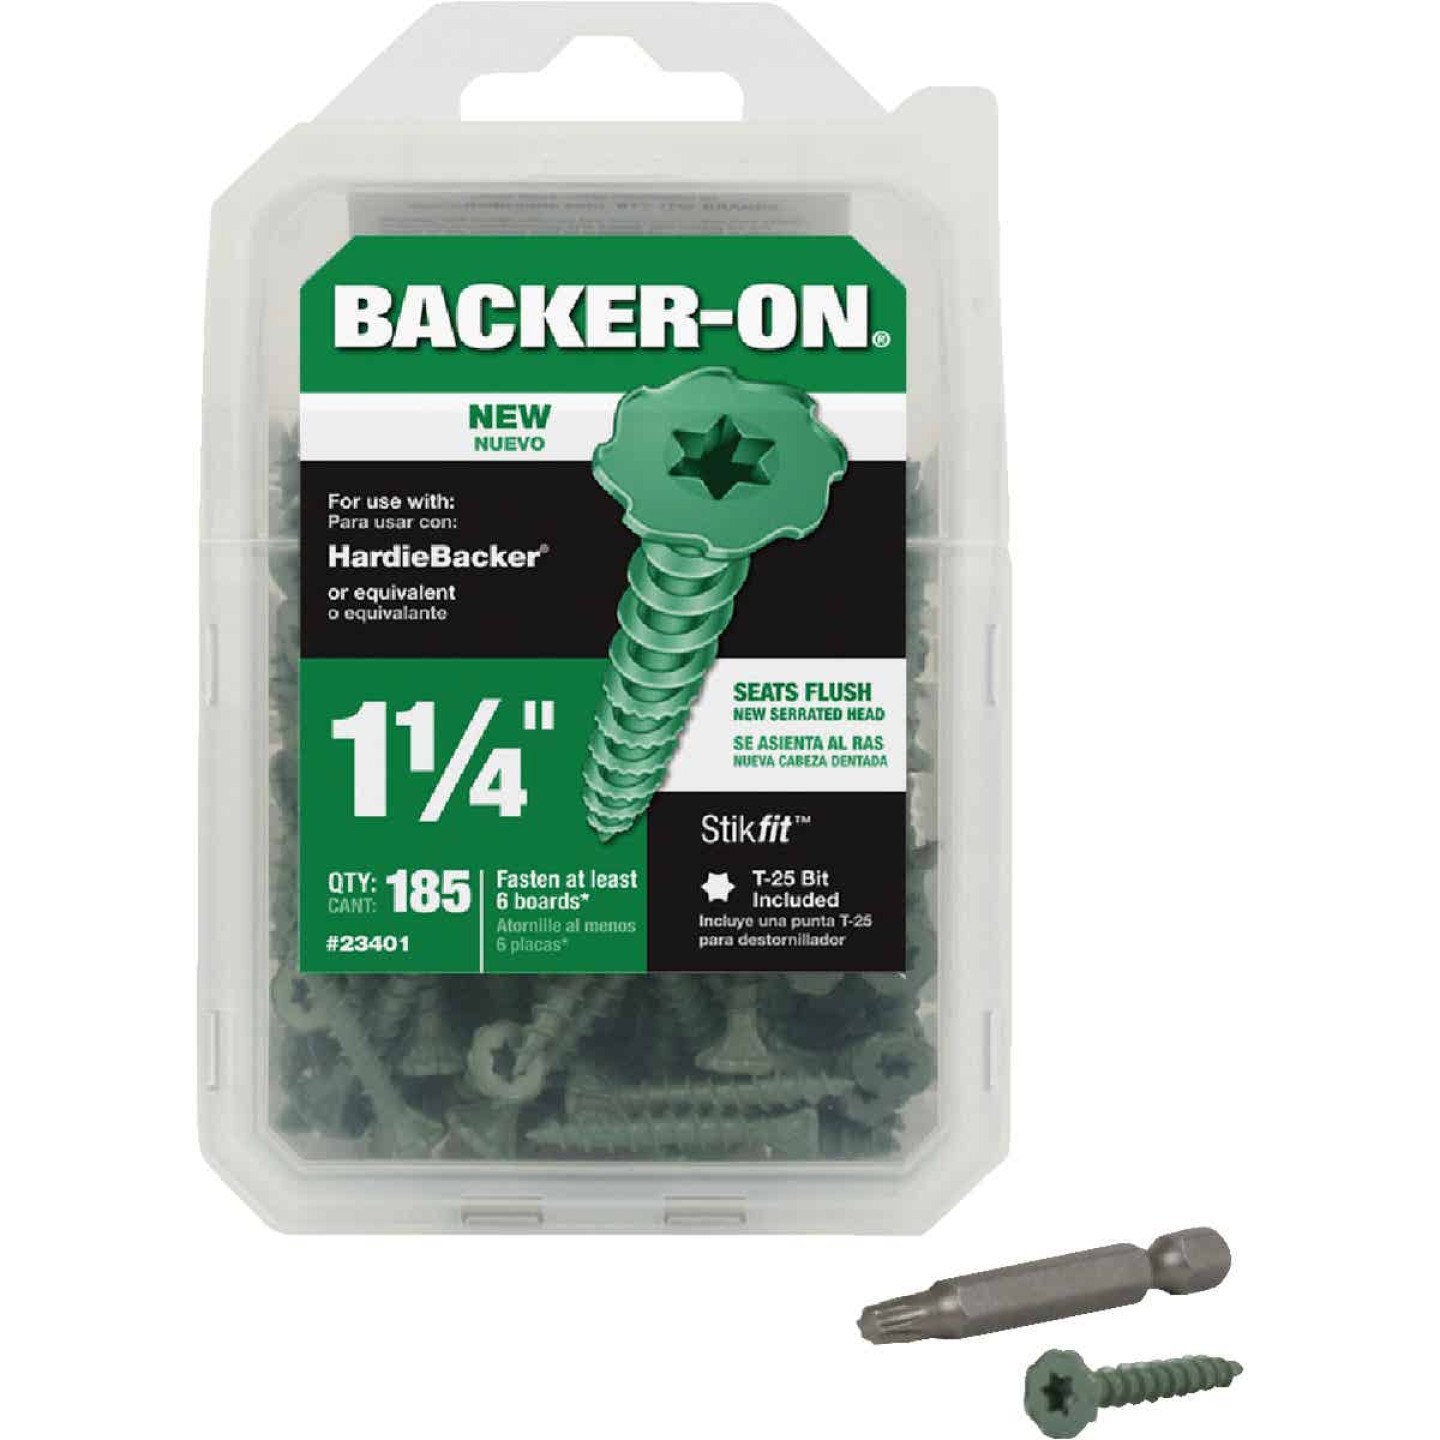 Buildex Backer-On #9 x 1-1/4 In. Cement Board Screw (185 Ct.) Image 1